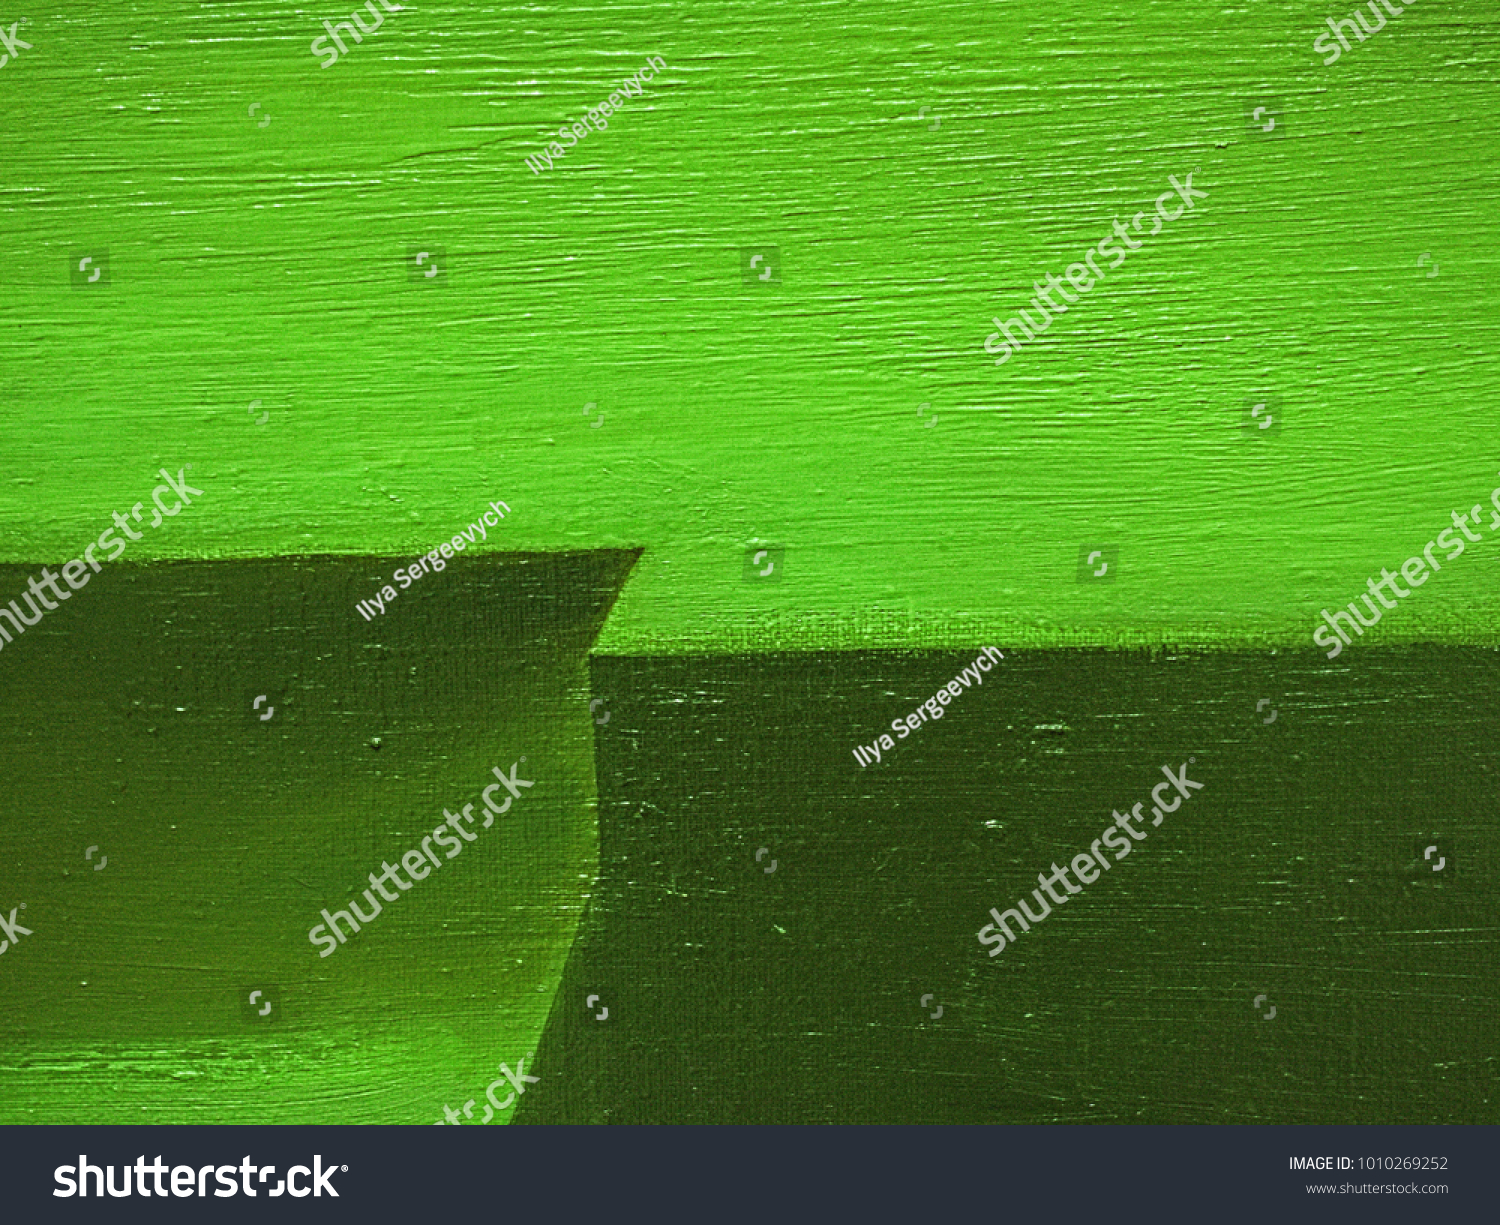 Canvas Hand Drawn Abstract Pale Green Stock Illustration 1010269252 ...